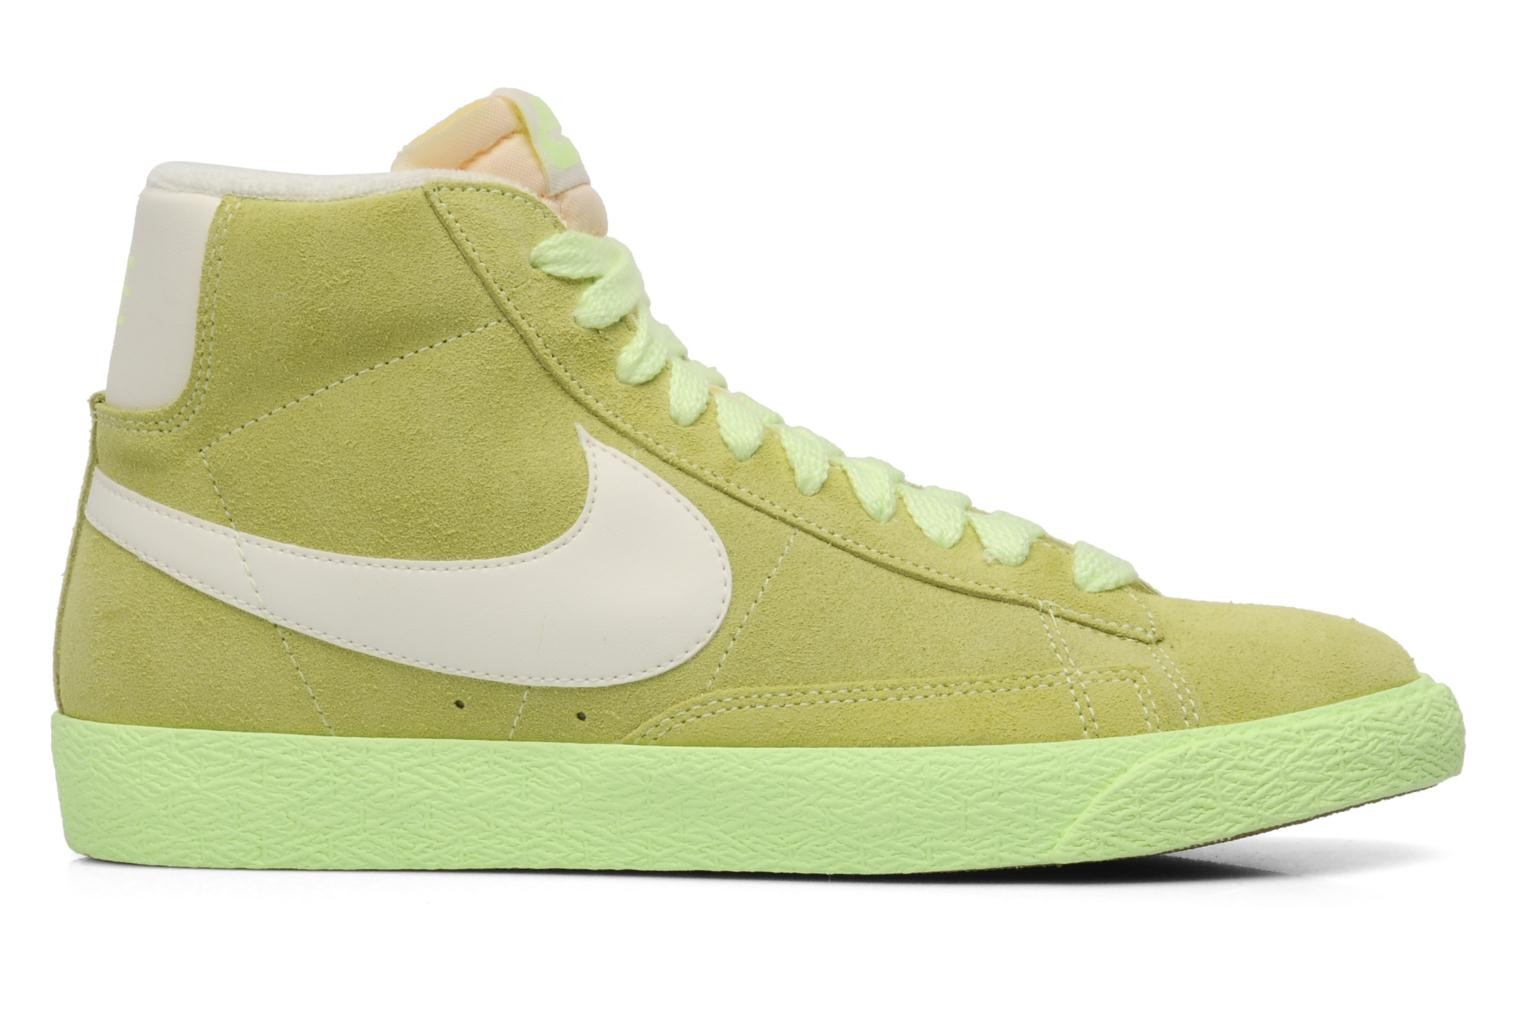 Nike WMNS Blazer Mid Suede Vintage Barely Volt Sail Gum Med Brown Womens High Top Sneakers